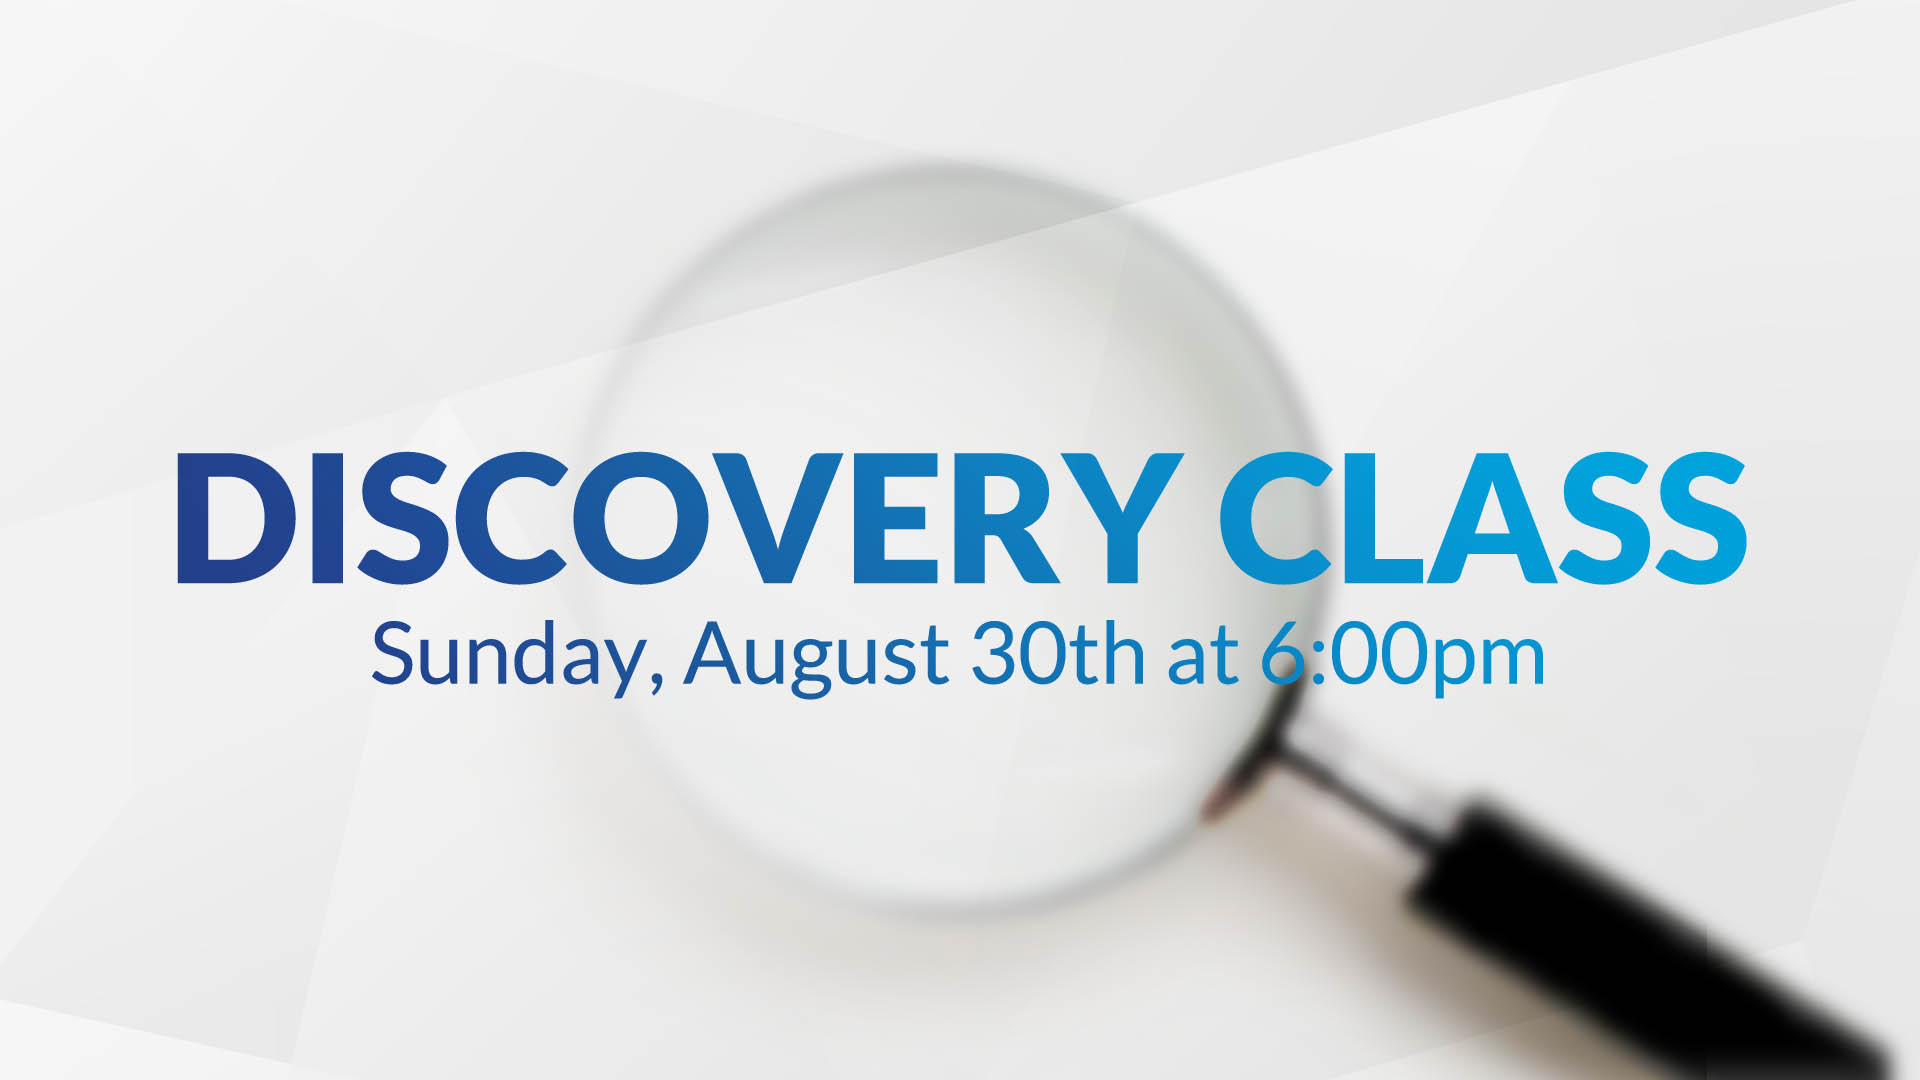 Save the Date for the next Discovery Class!